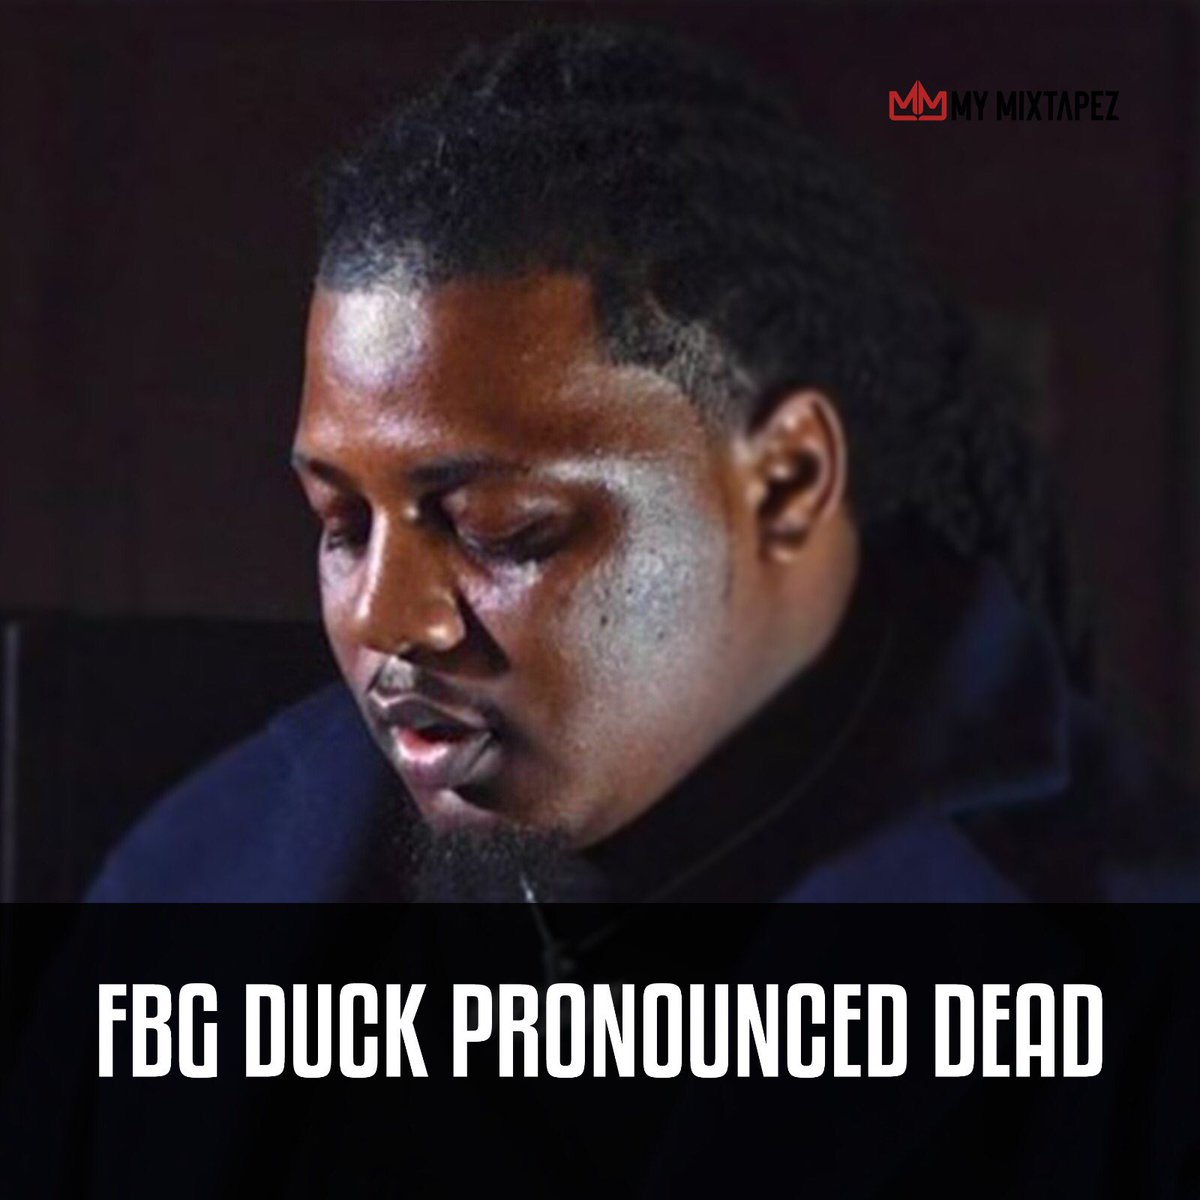 #Chicago rapper #FBGDuck has reportedly passed away. Video footage was captured of the aftermath of the shooting. 2 others were also shot and rushed to the hospital but no details on their condition yet. Sending our condolences to @FBG_DUCK and his family 🙏